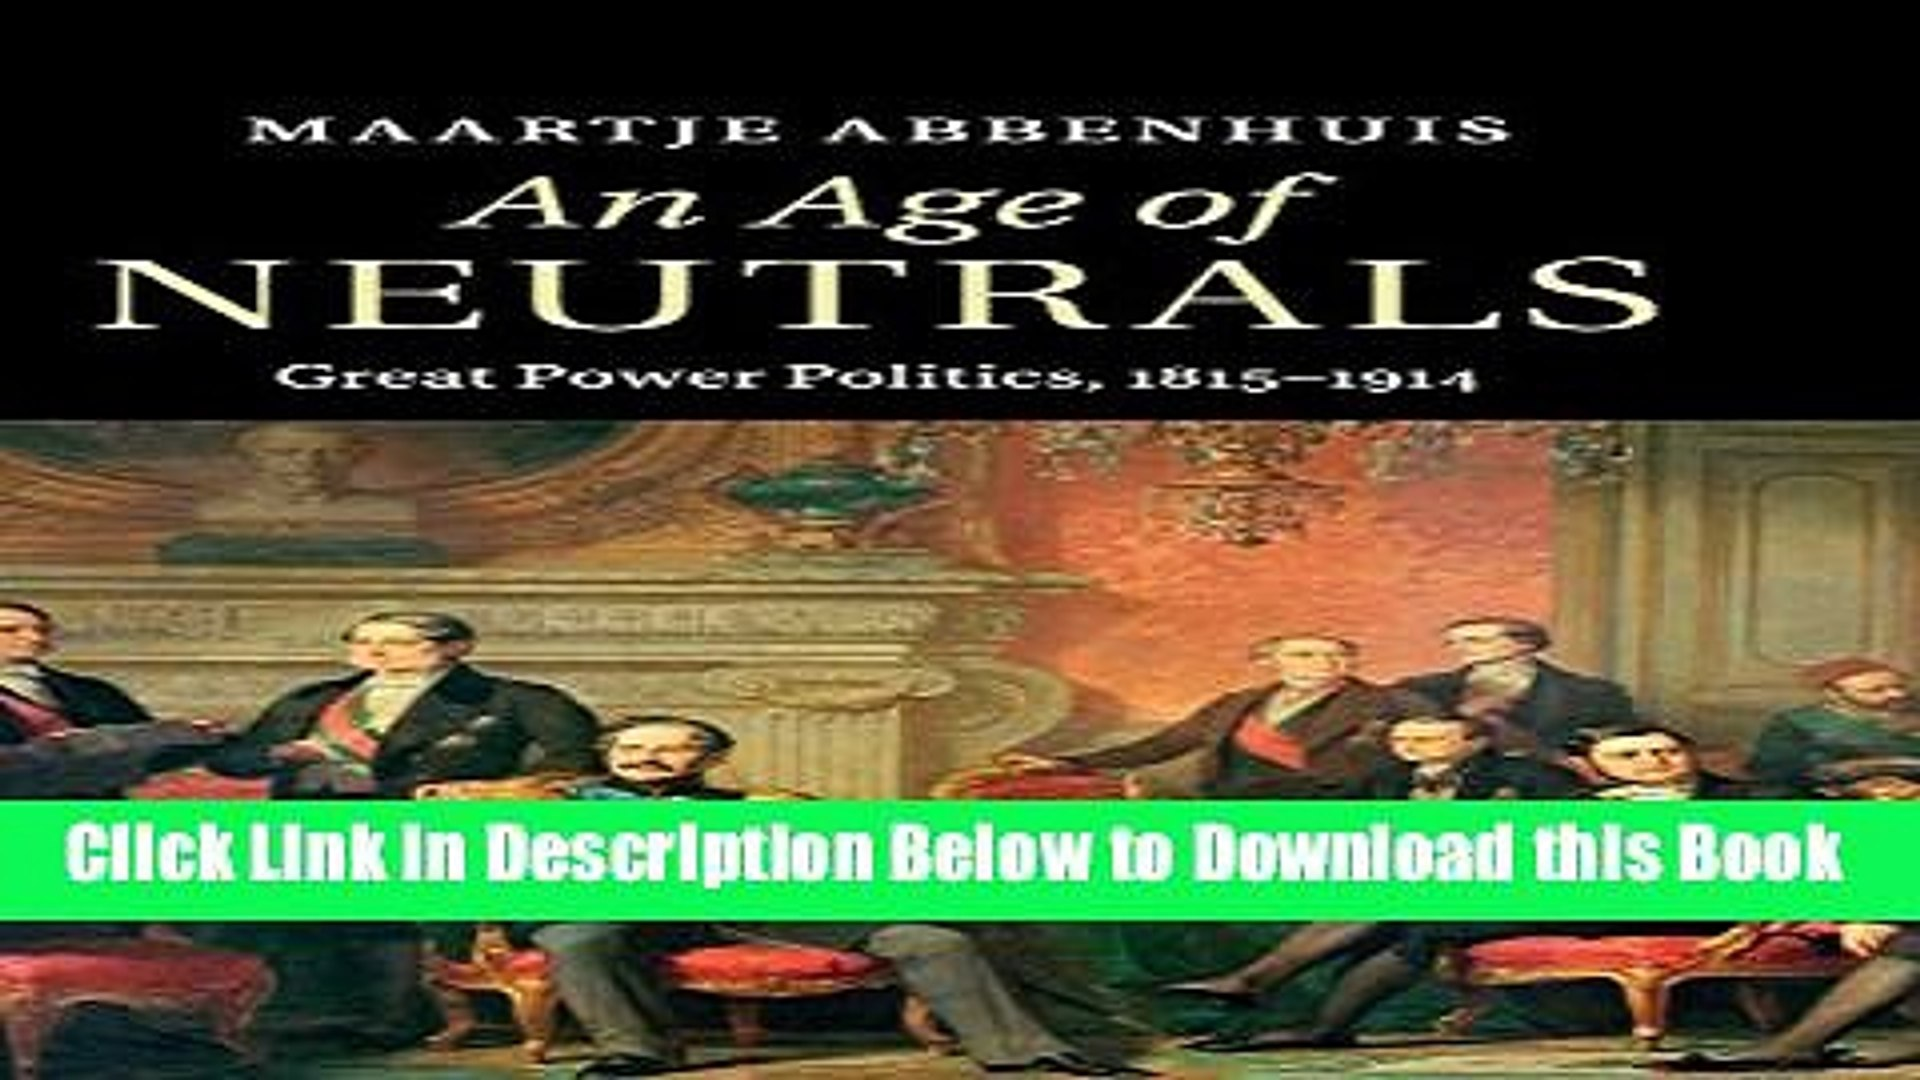 [Reads] An Age of Neutrals: Great Power Politics, 1815-1914 Free Books